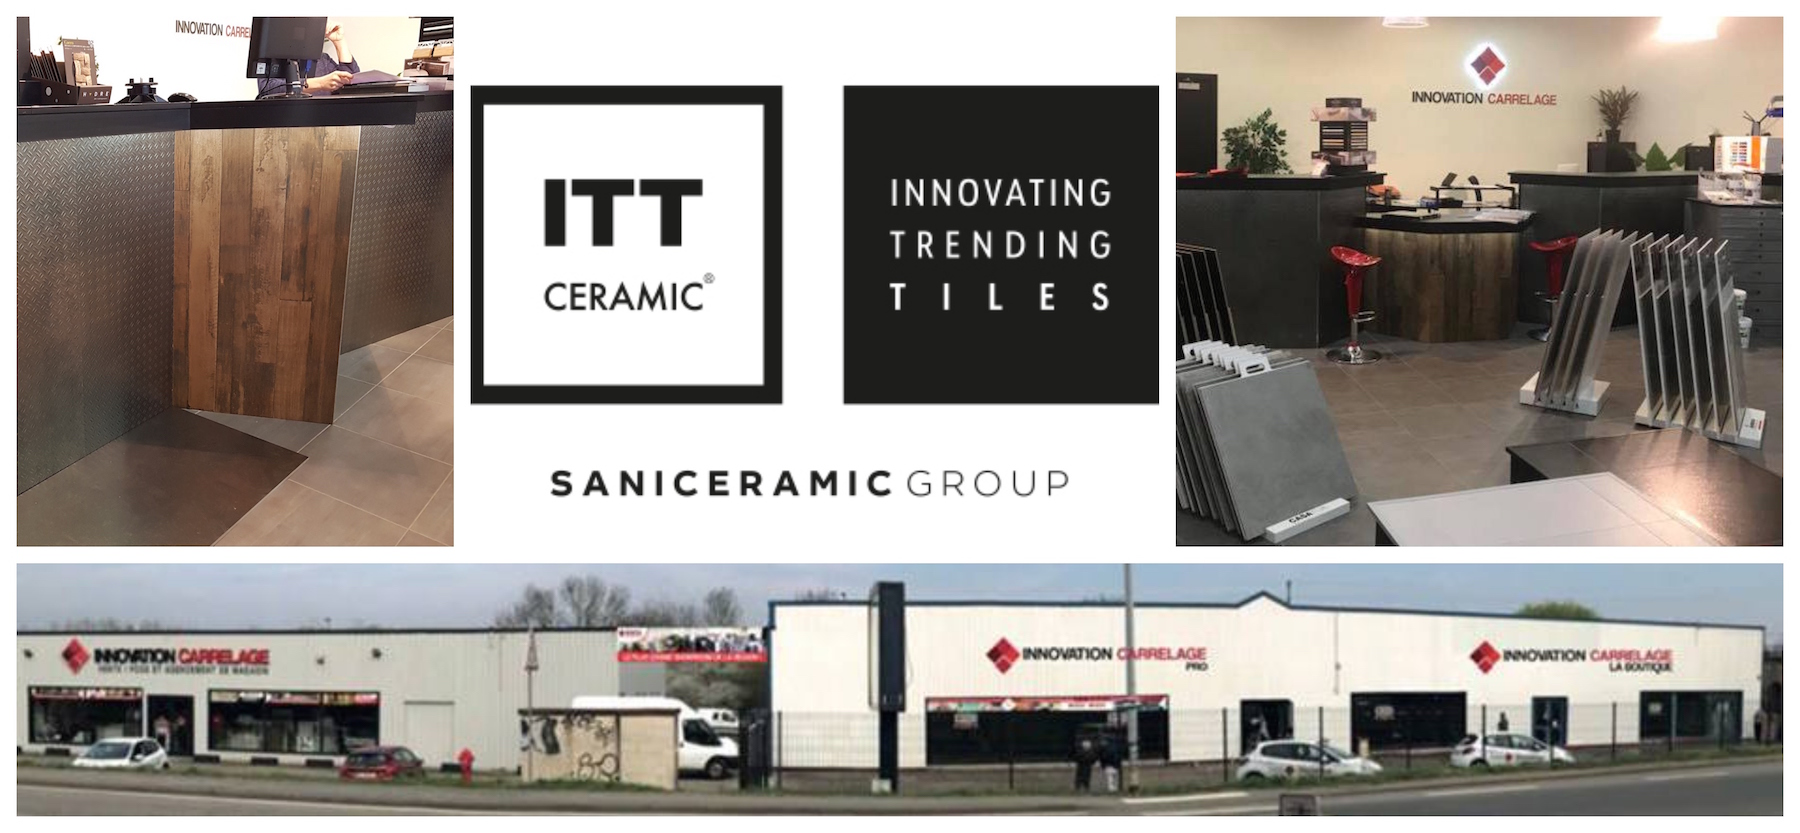 ITT Ceramic strengthens its partnership with Innovation Carrelage